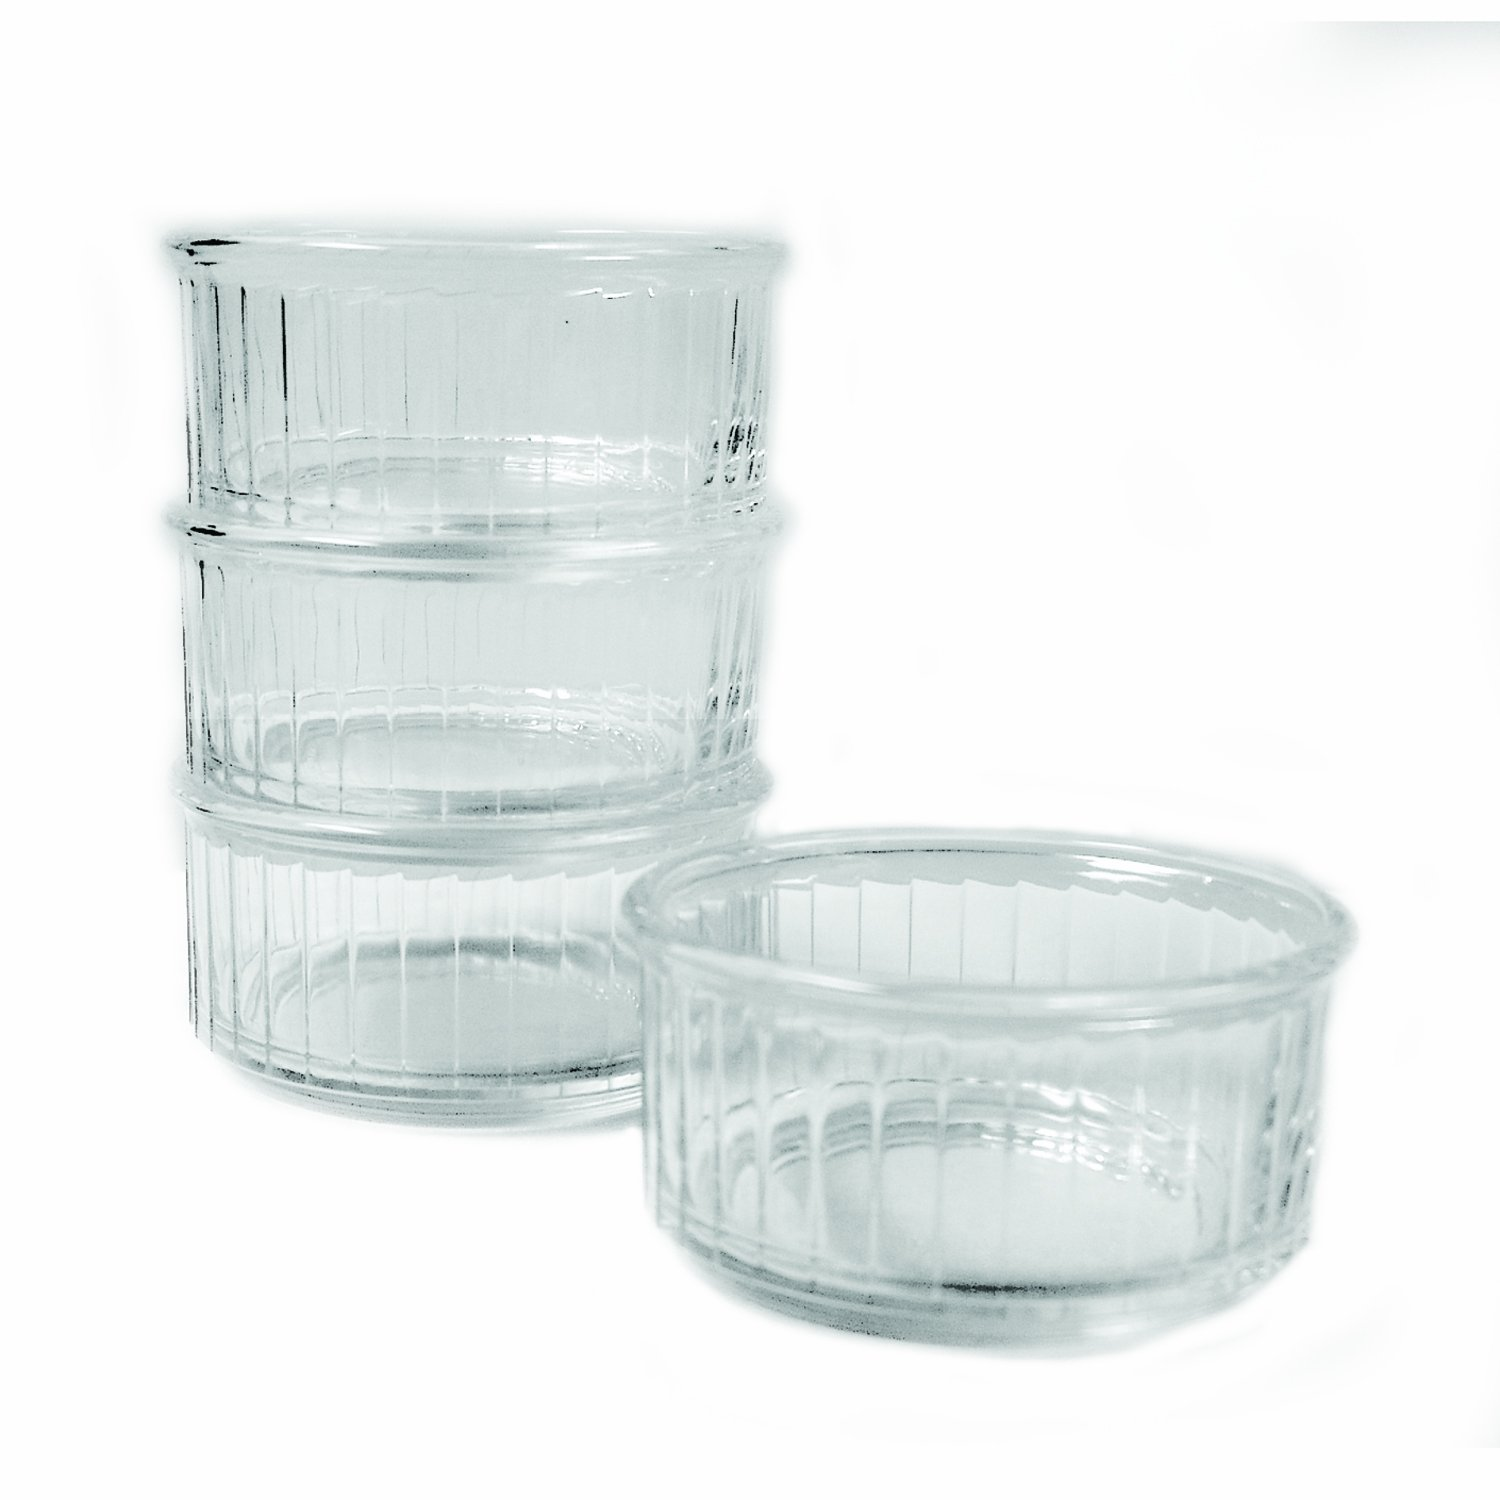 Duralex Made In France 4-Ounce Glass Ramekin, Set of 4 5009AC04/4